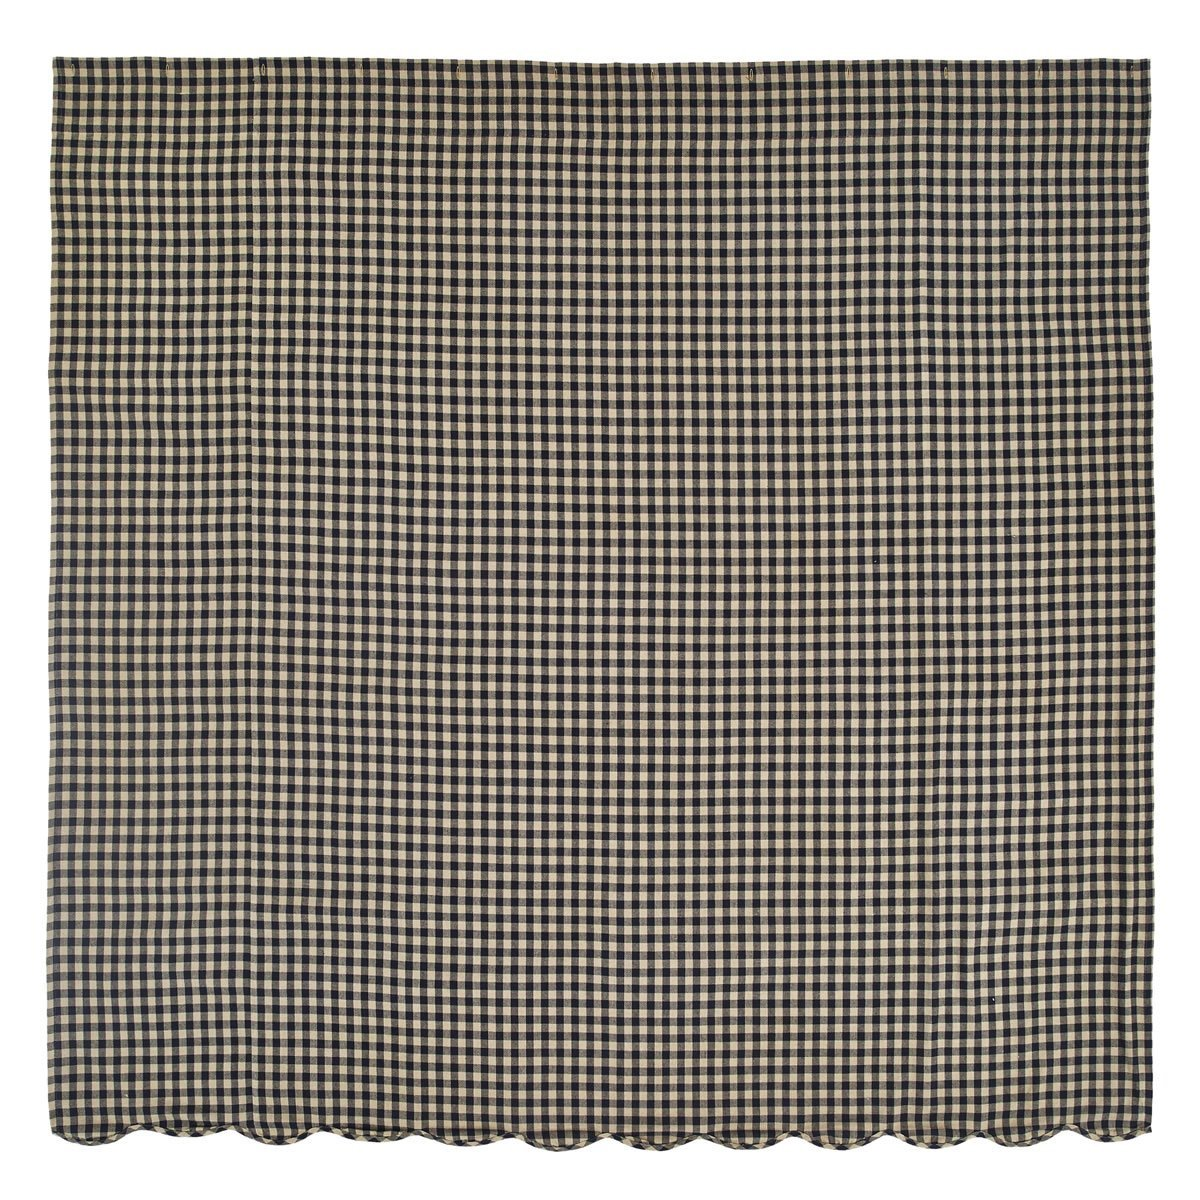 Amazon.com: Navy Check Scalloped Shower Curtain: Home & Kitchen